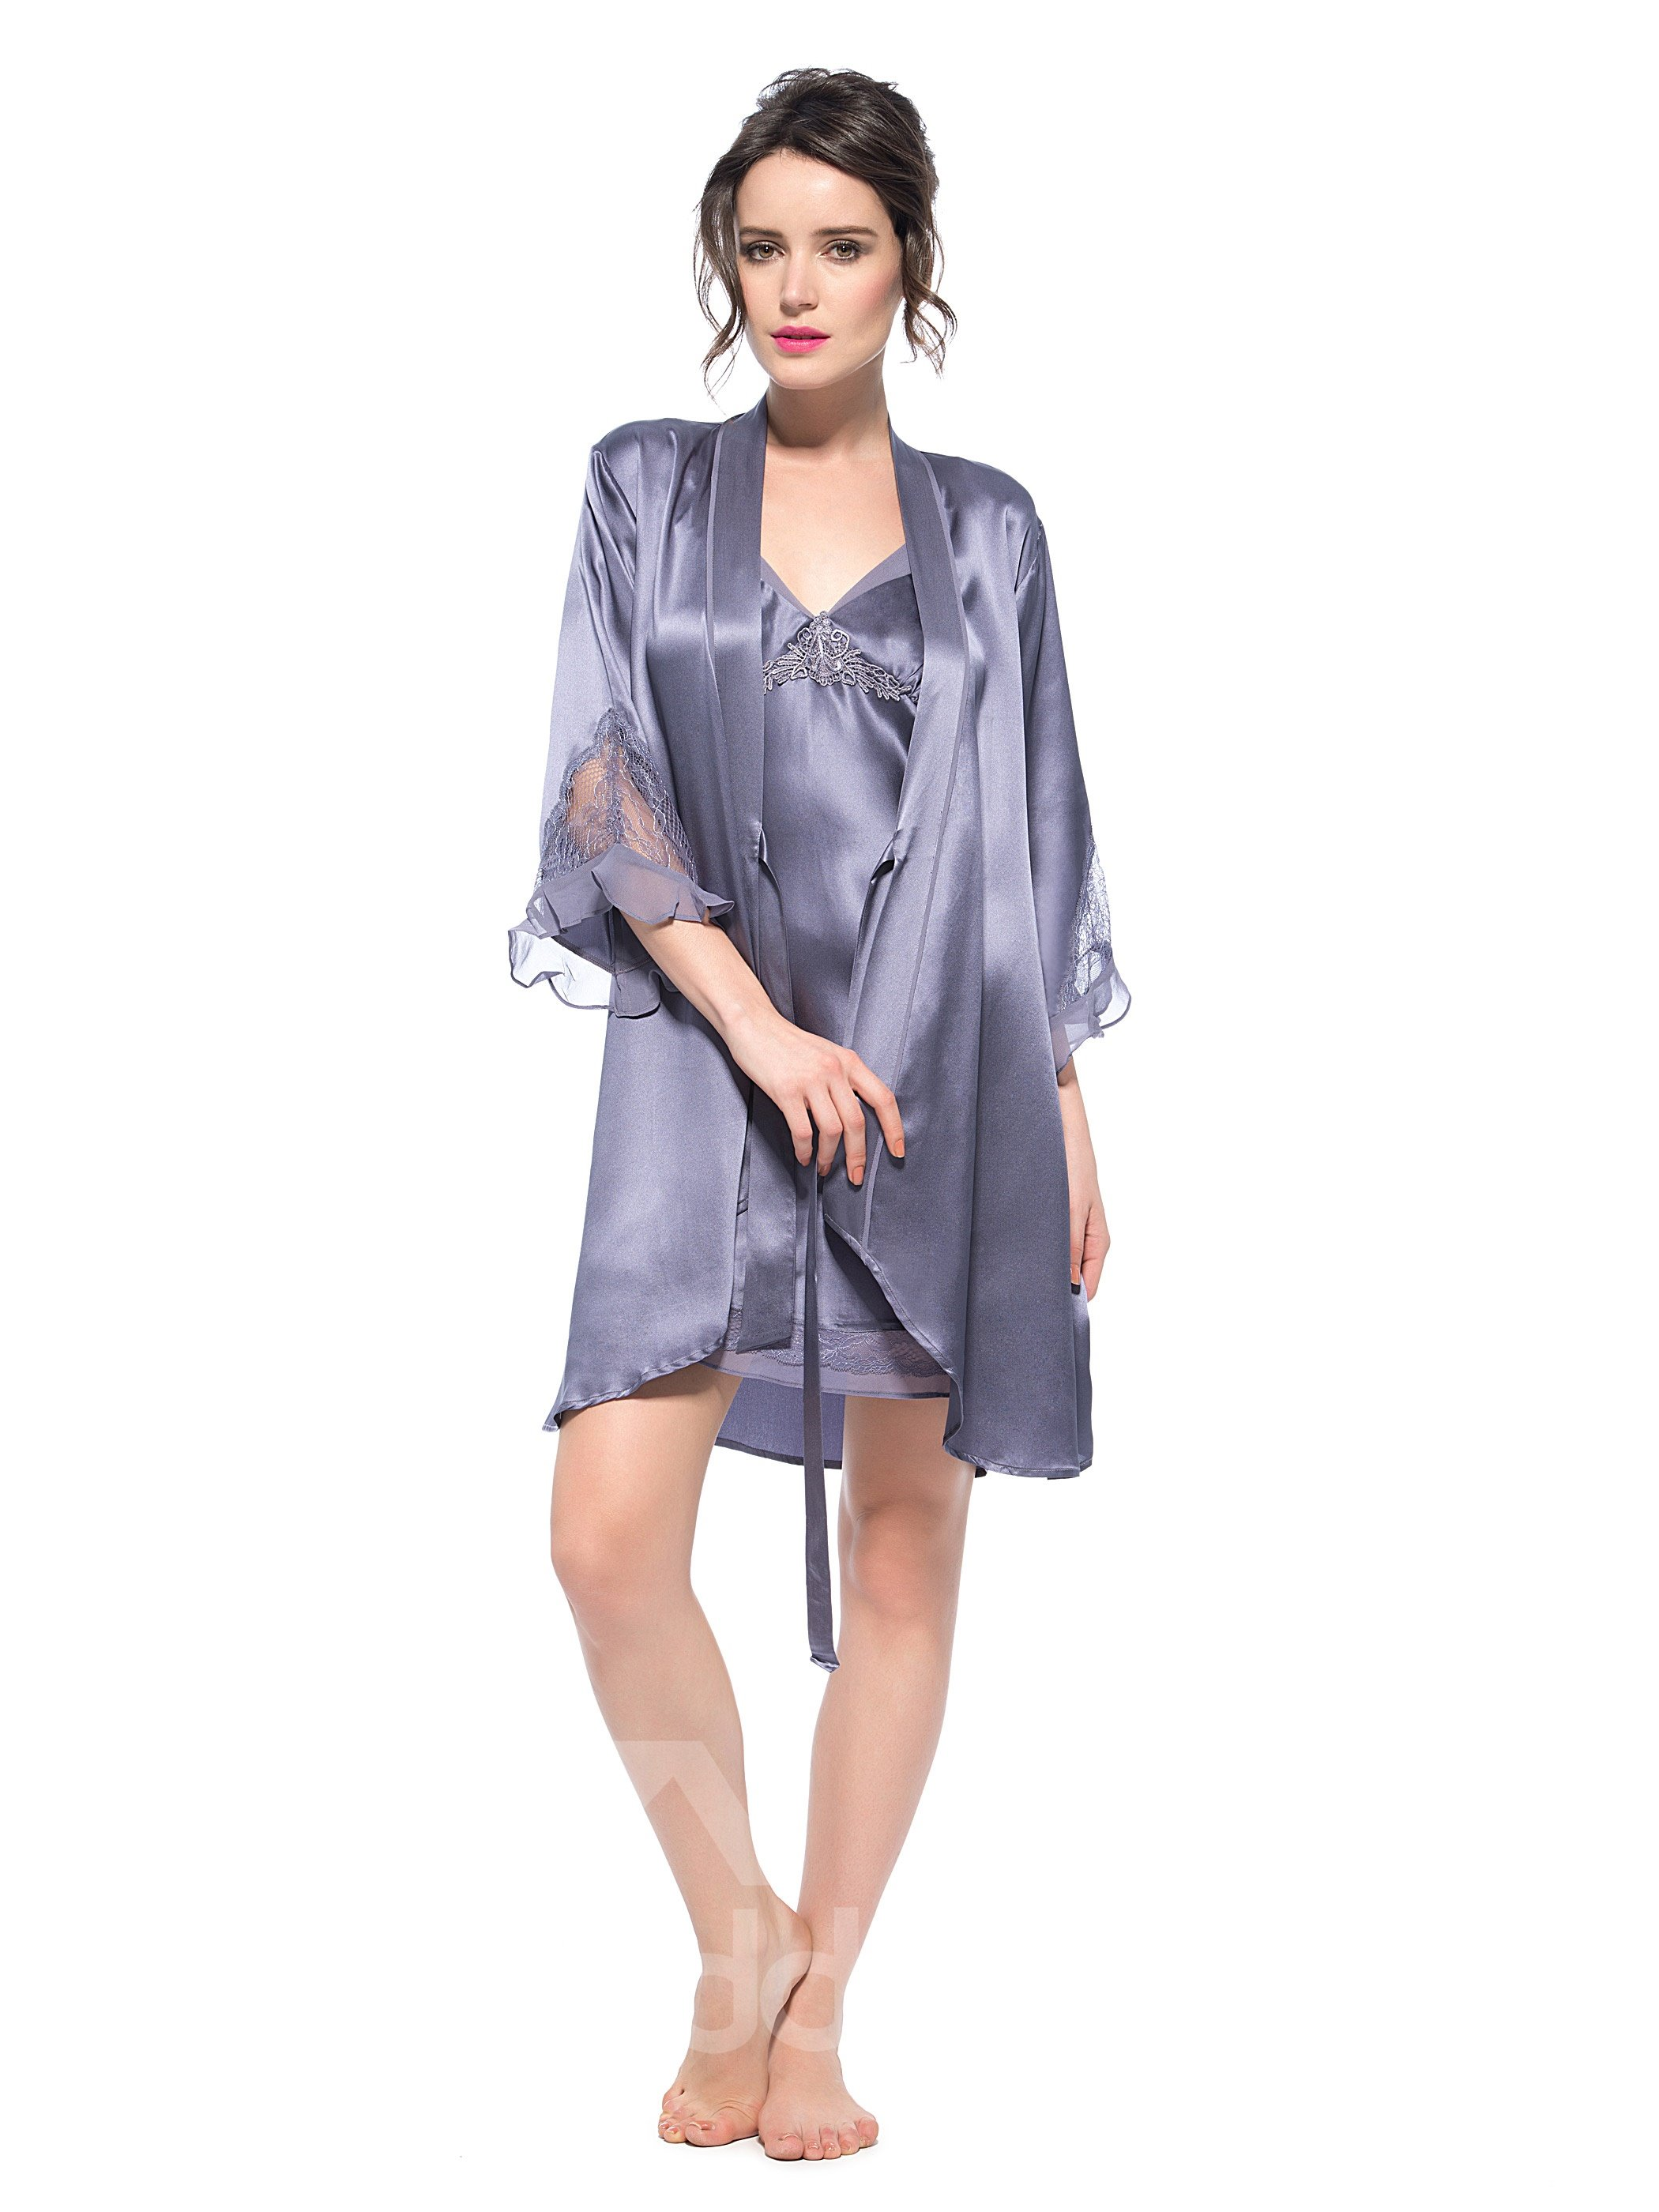 Pretty Good Top Selling Silk Robe and Chemise Sets